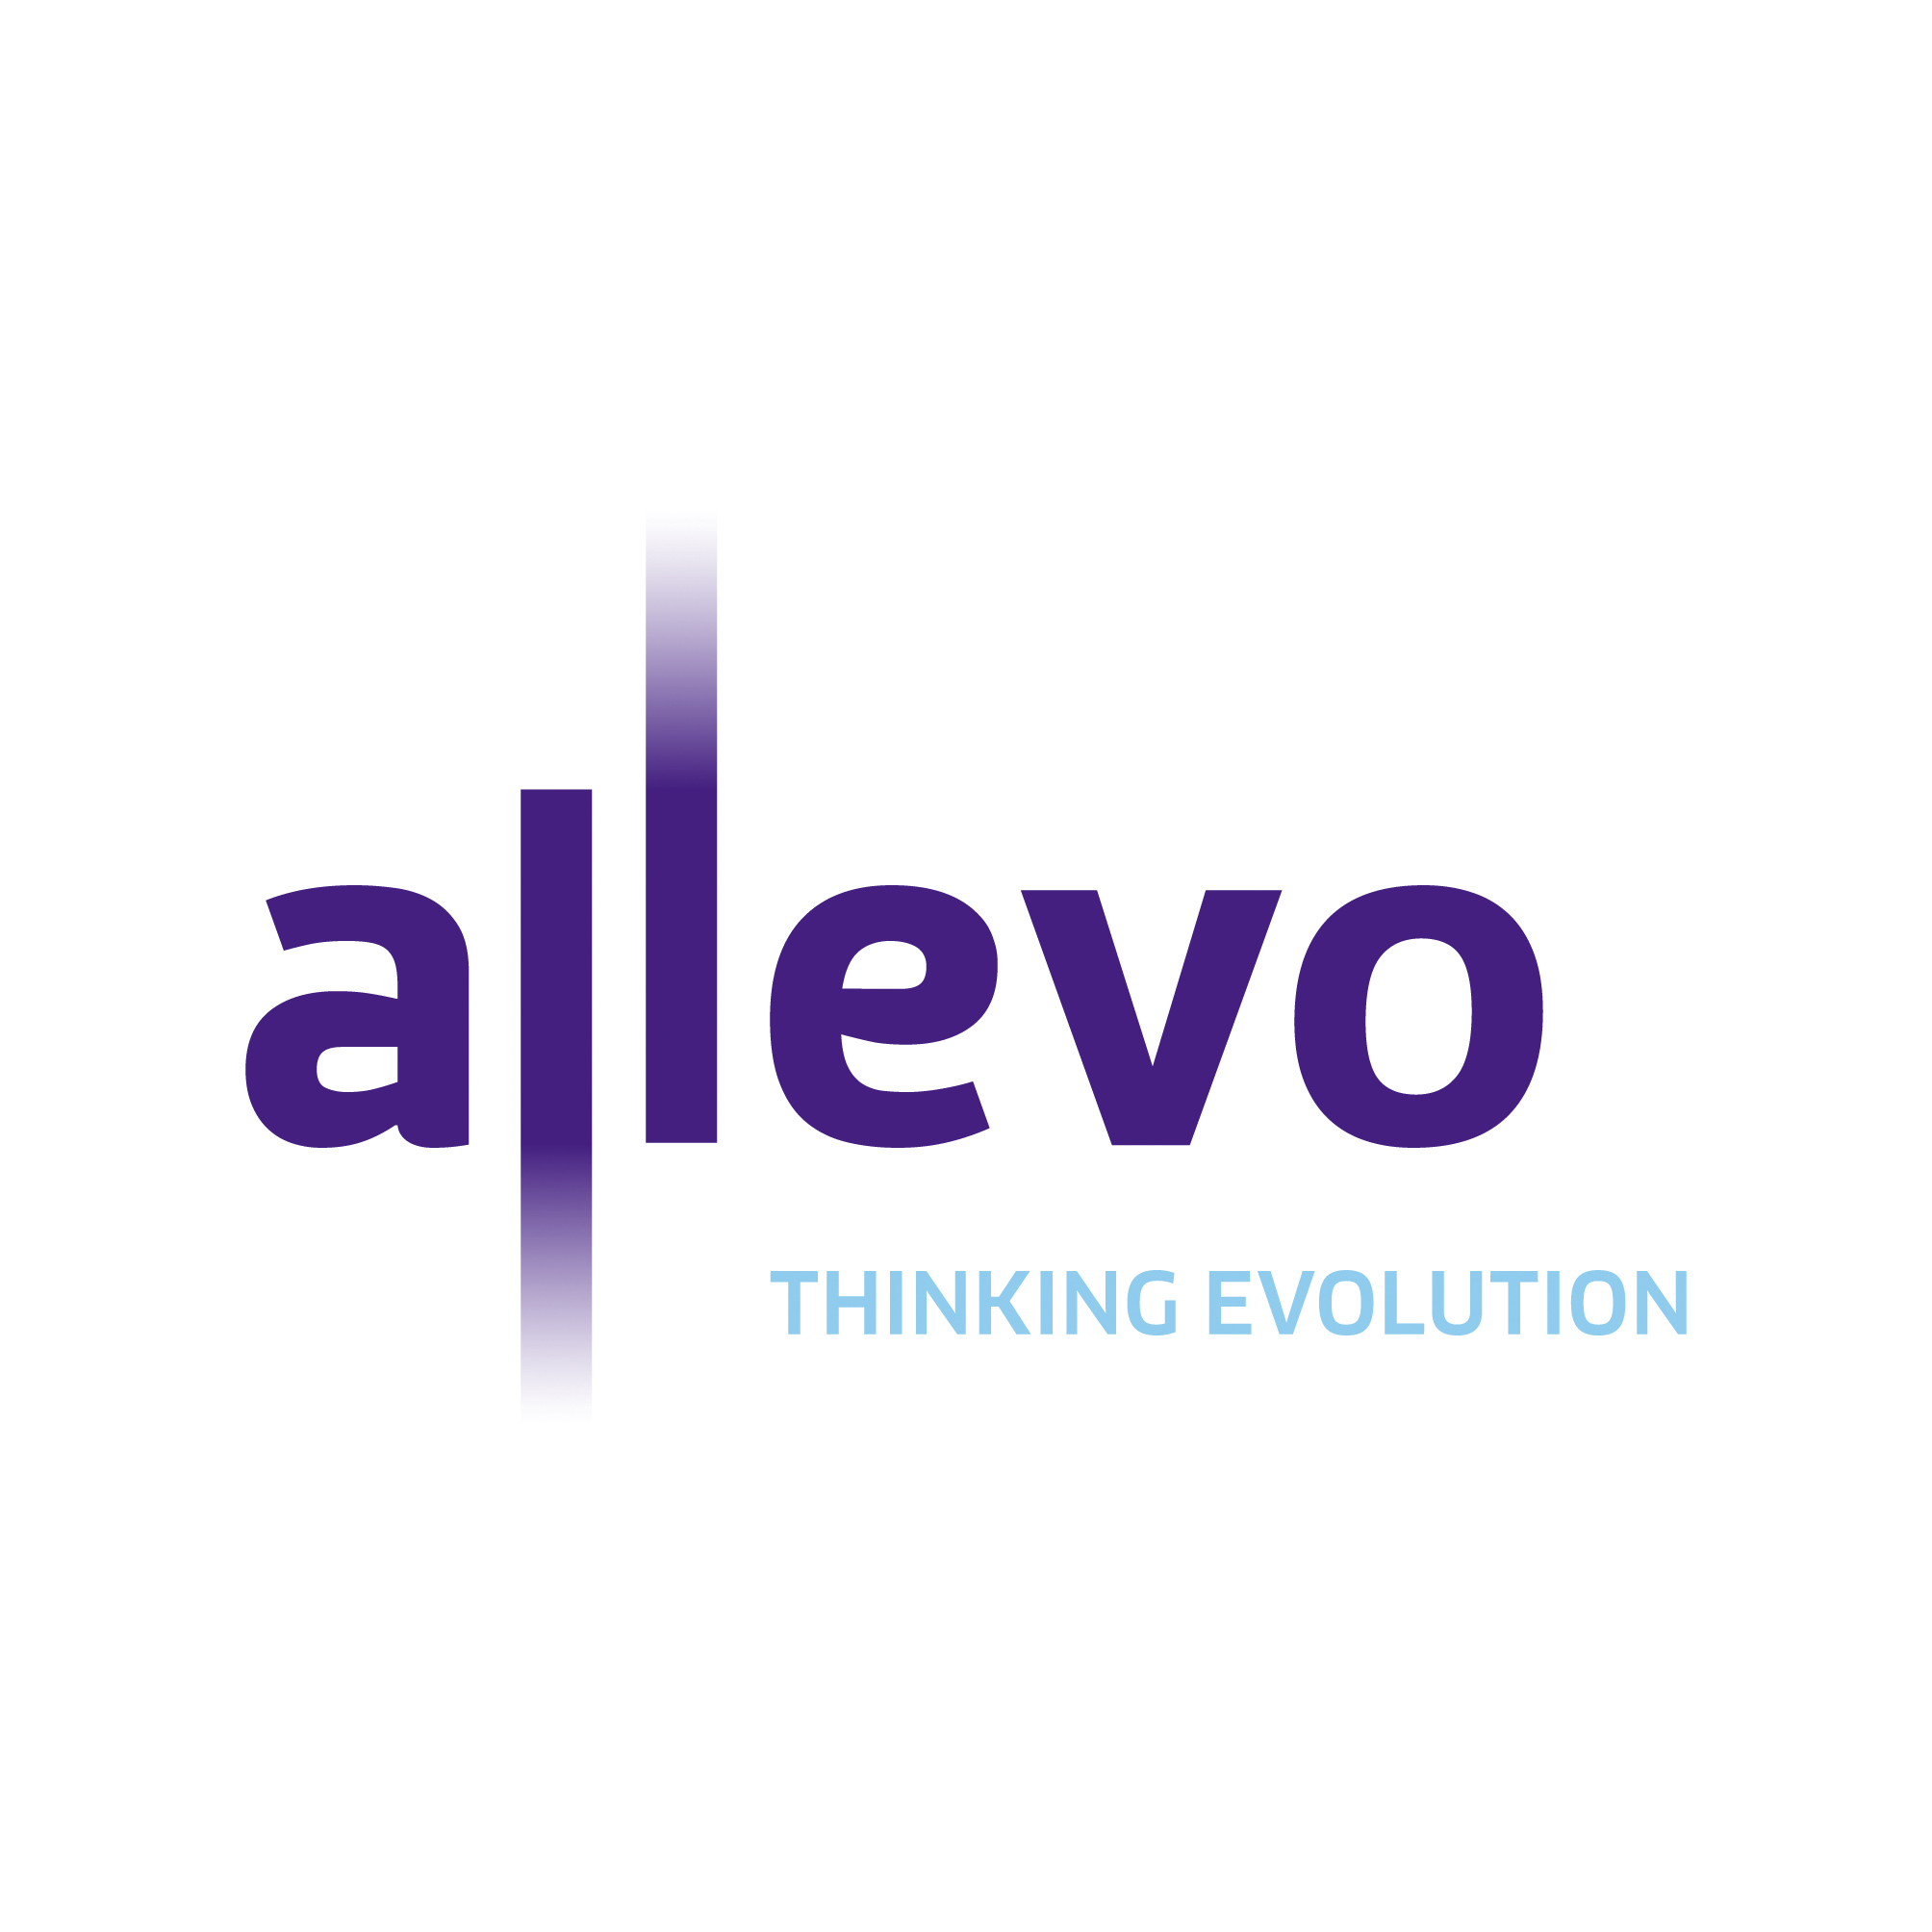 Allevo exhibits at Startup Grind Global Conference 2020 in Silicon Valley